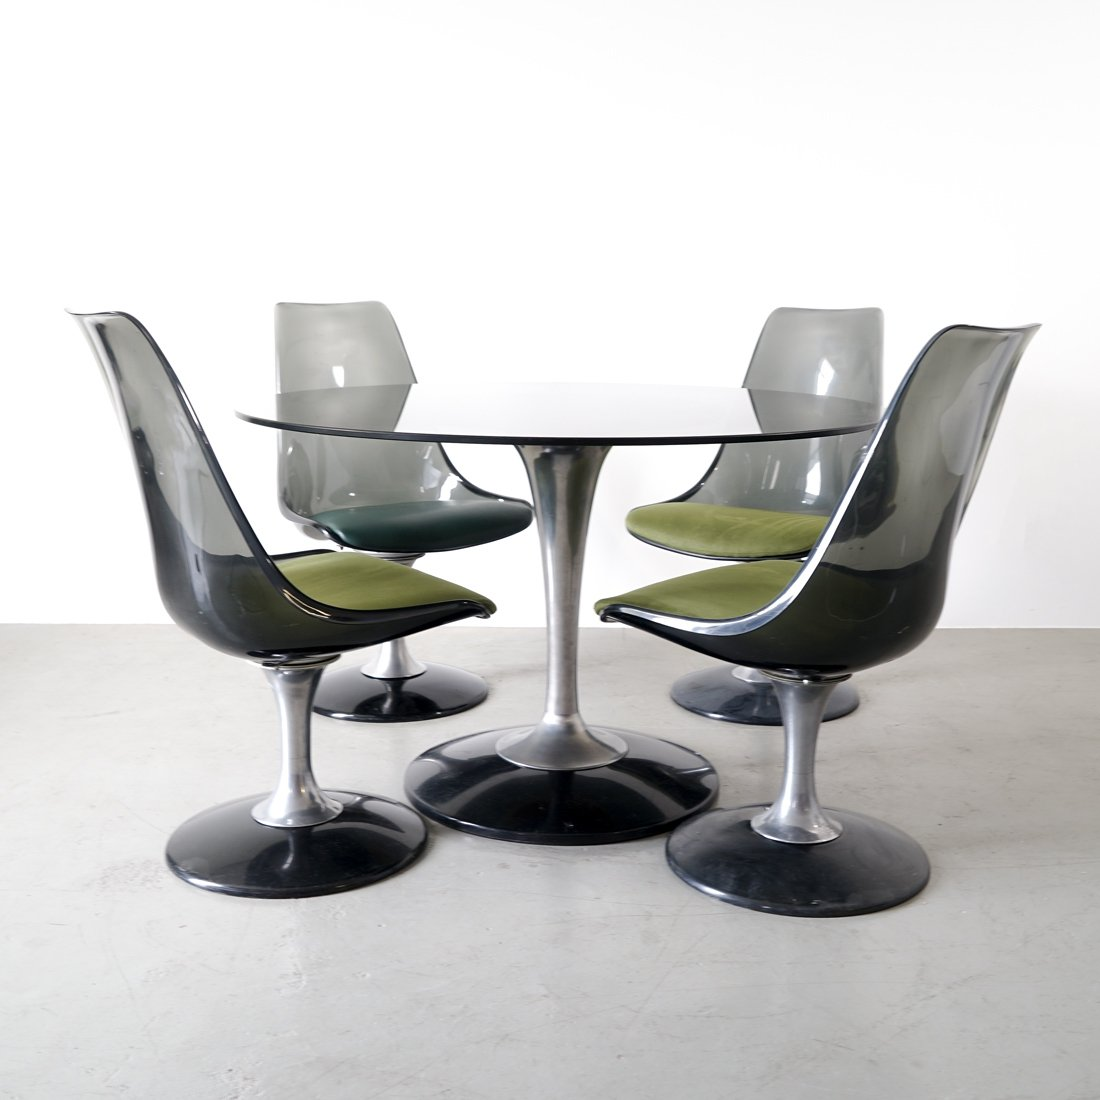 Mid-century Chromcraft set consisting of glass table with 4 tulip chairs | #99906  sc 1 st  VNTG & Mid-century Chromcraft set consisting of glass table with 4 tulip ...